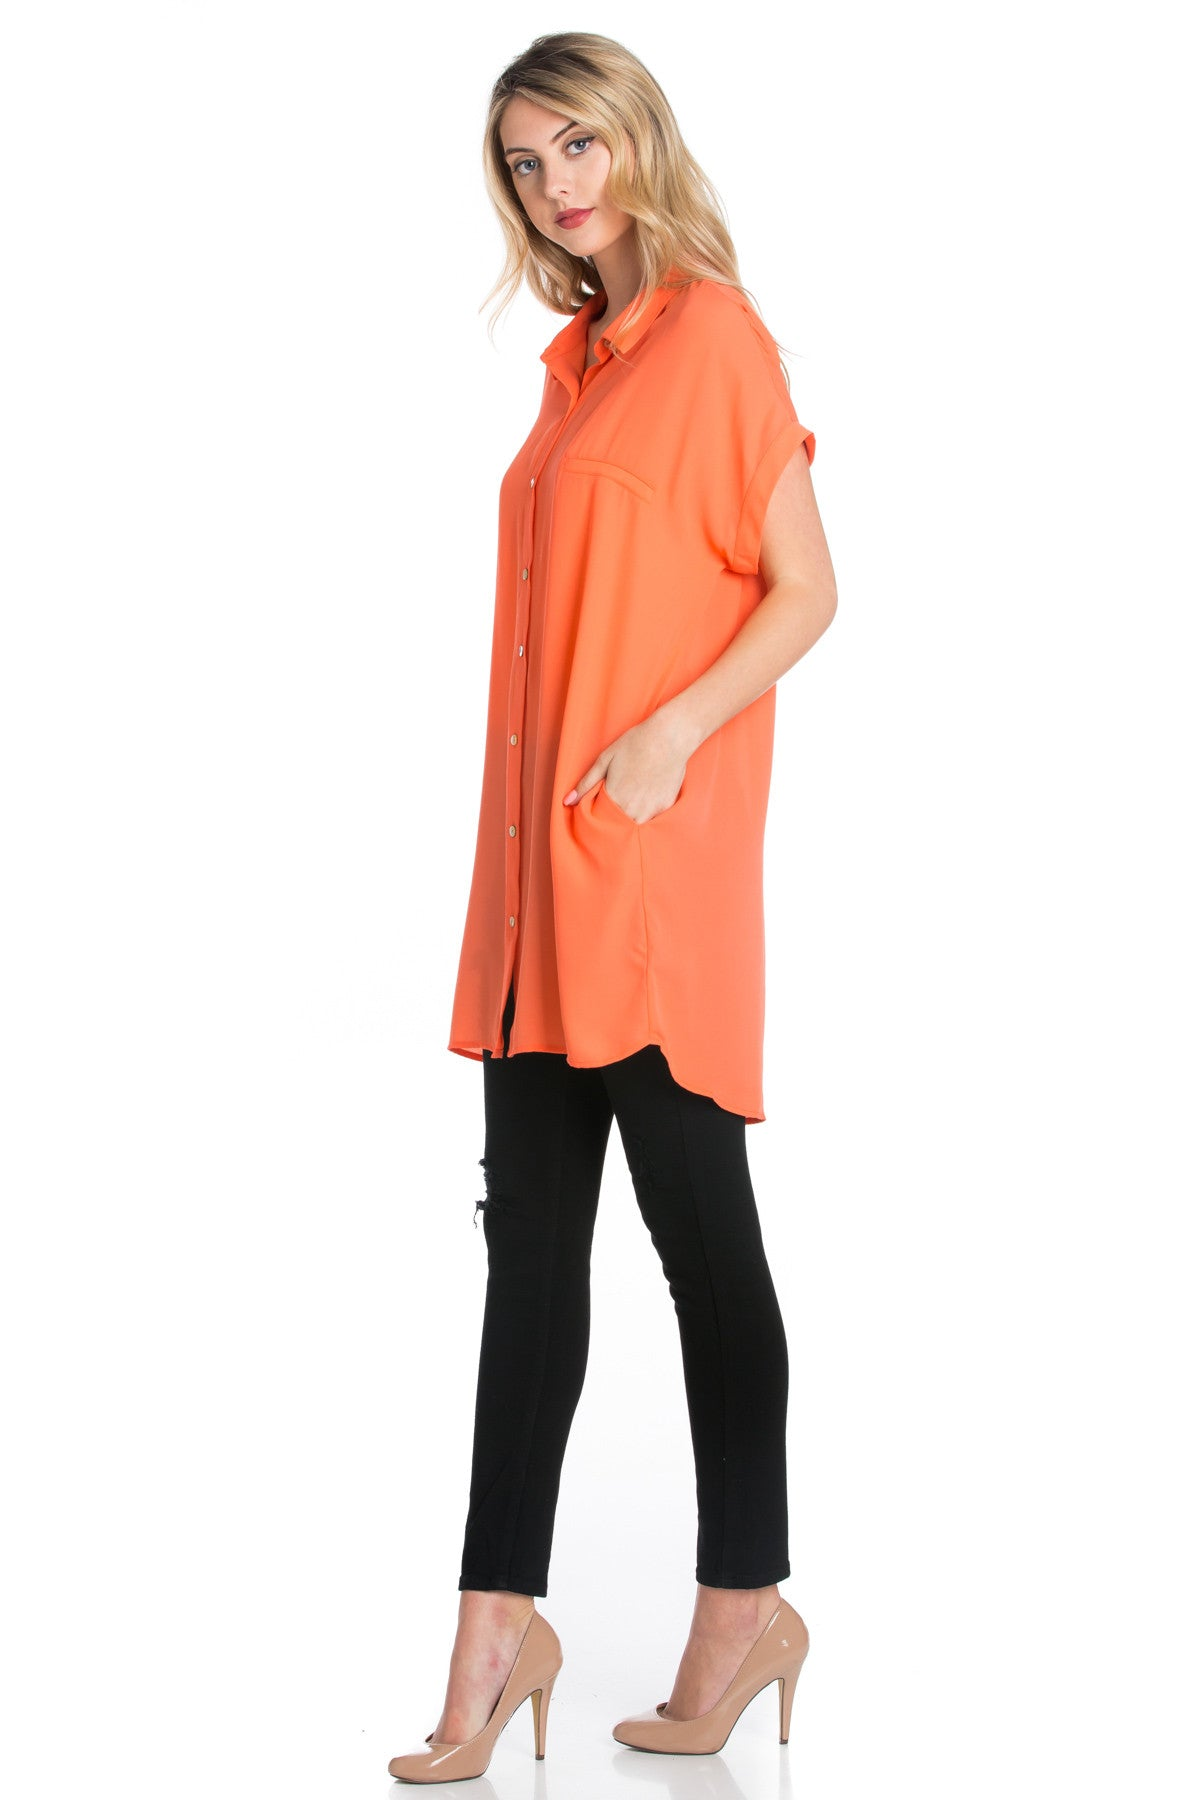 Short Sleeve Longline Button Down Chiffon Top in Peachy - Tops - My Yuccie - 12